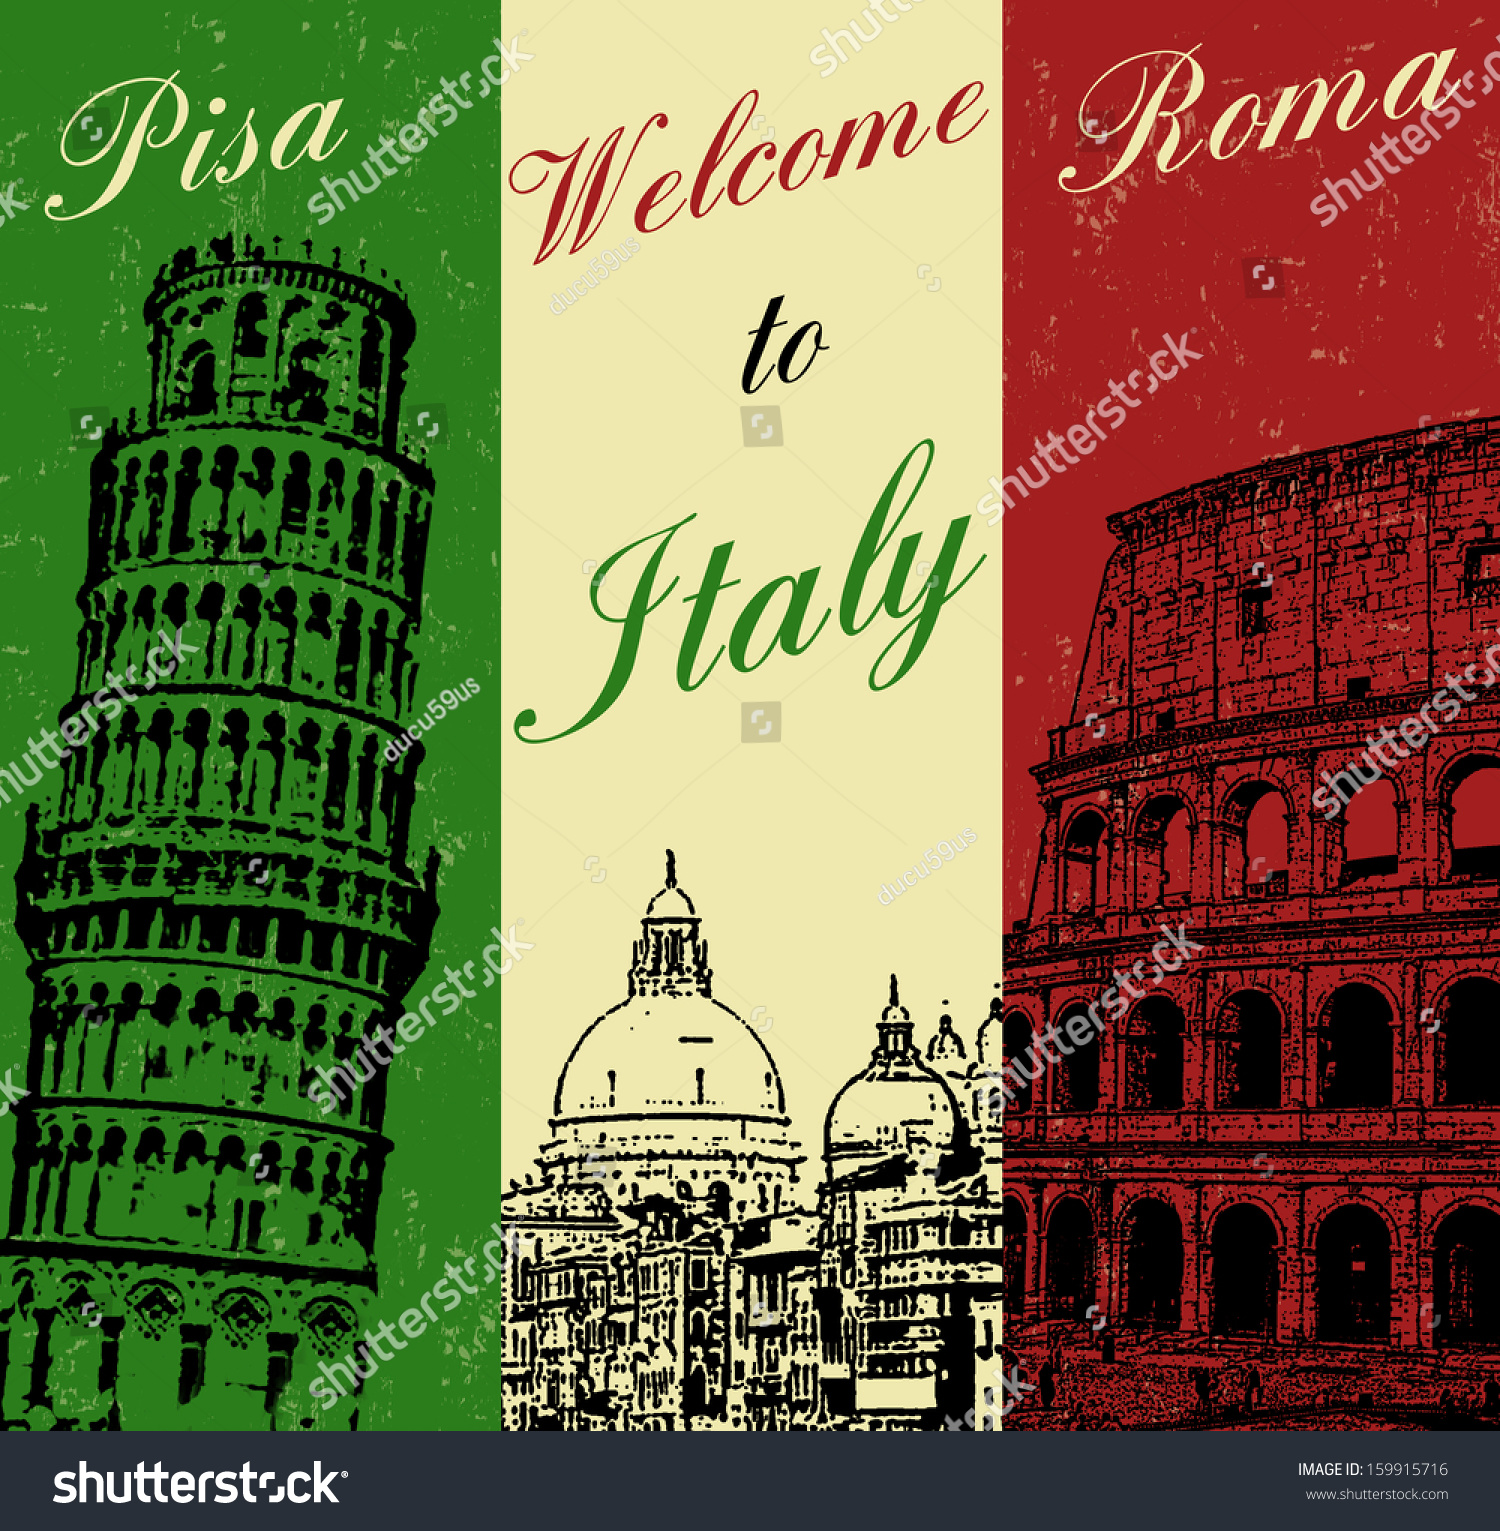 how to say welcome to italy in italian